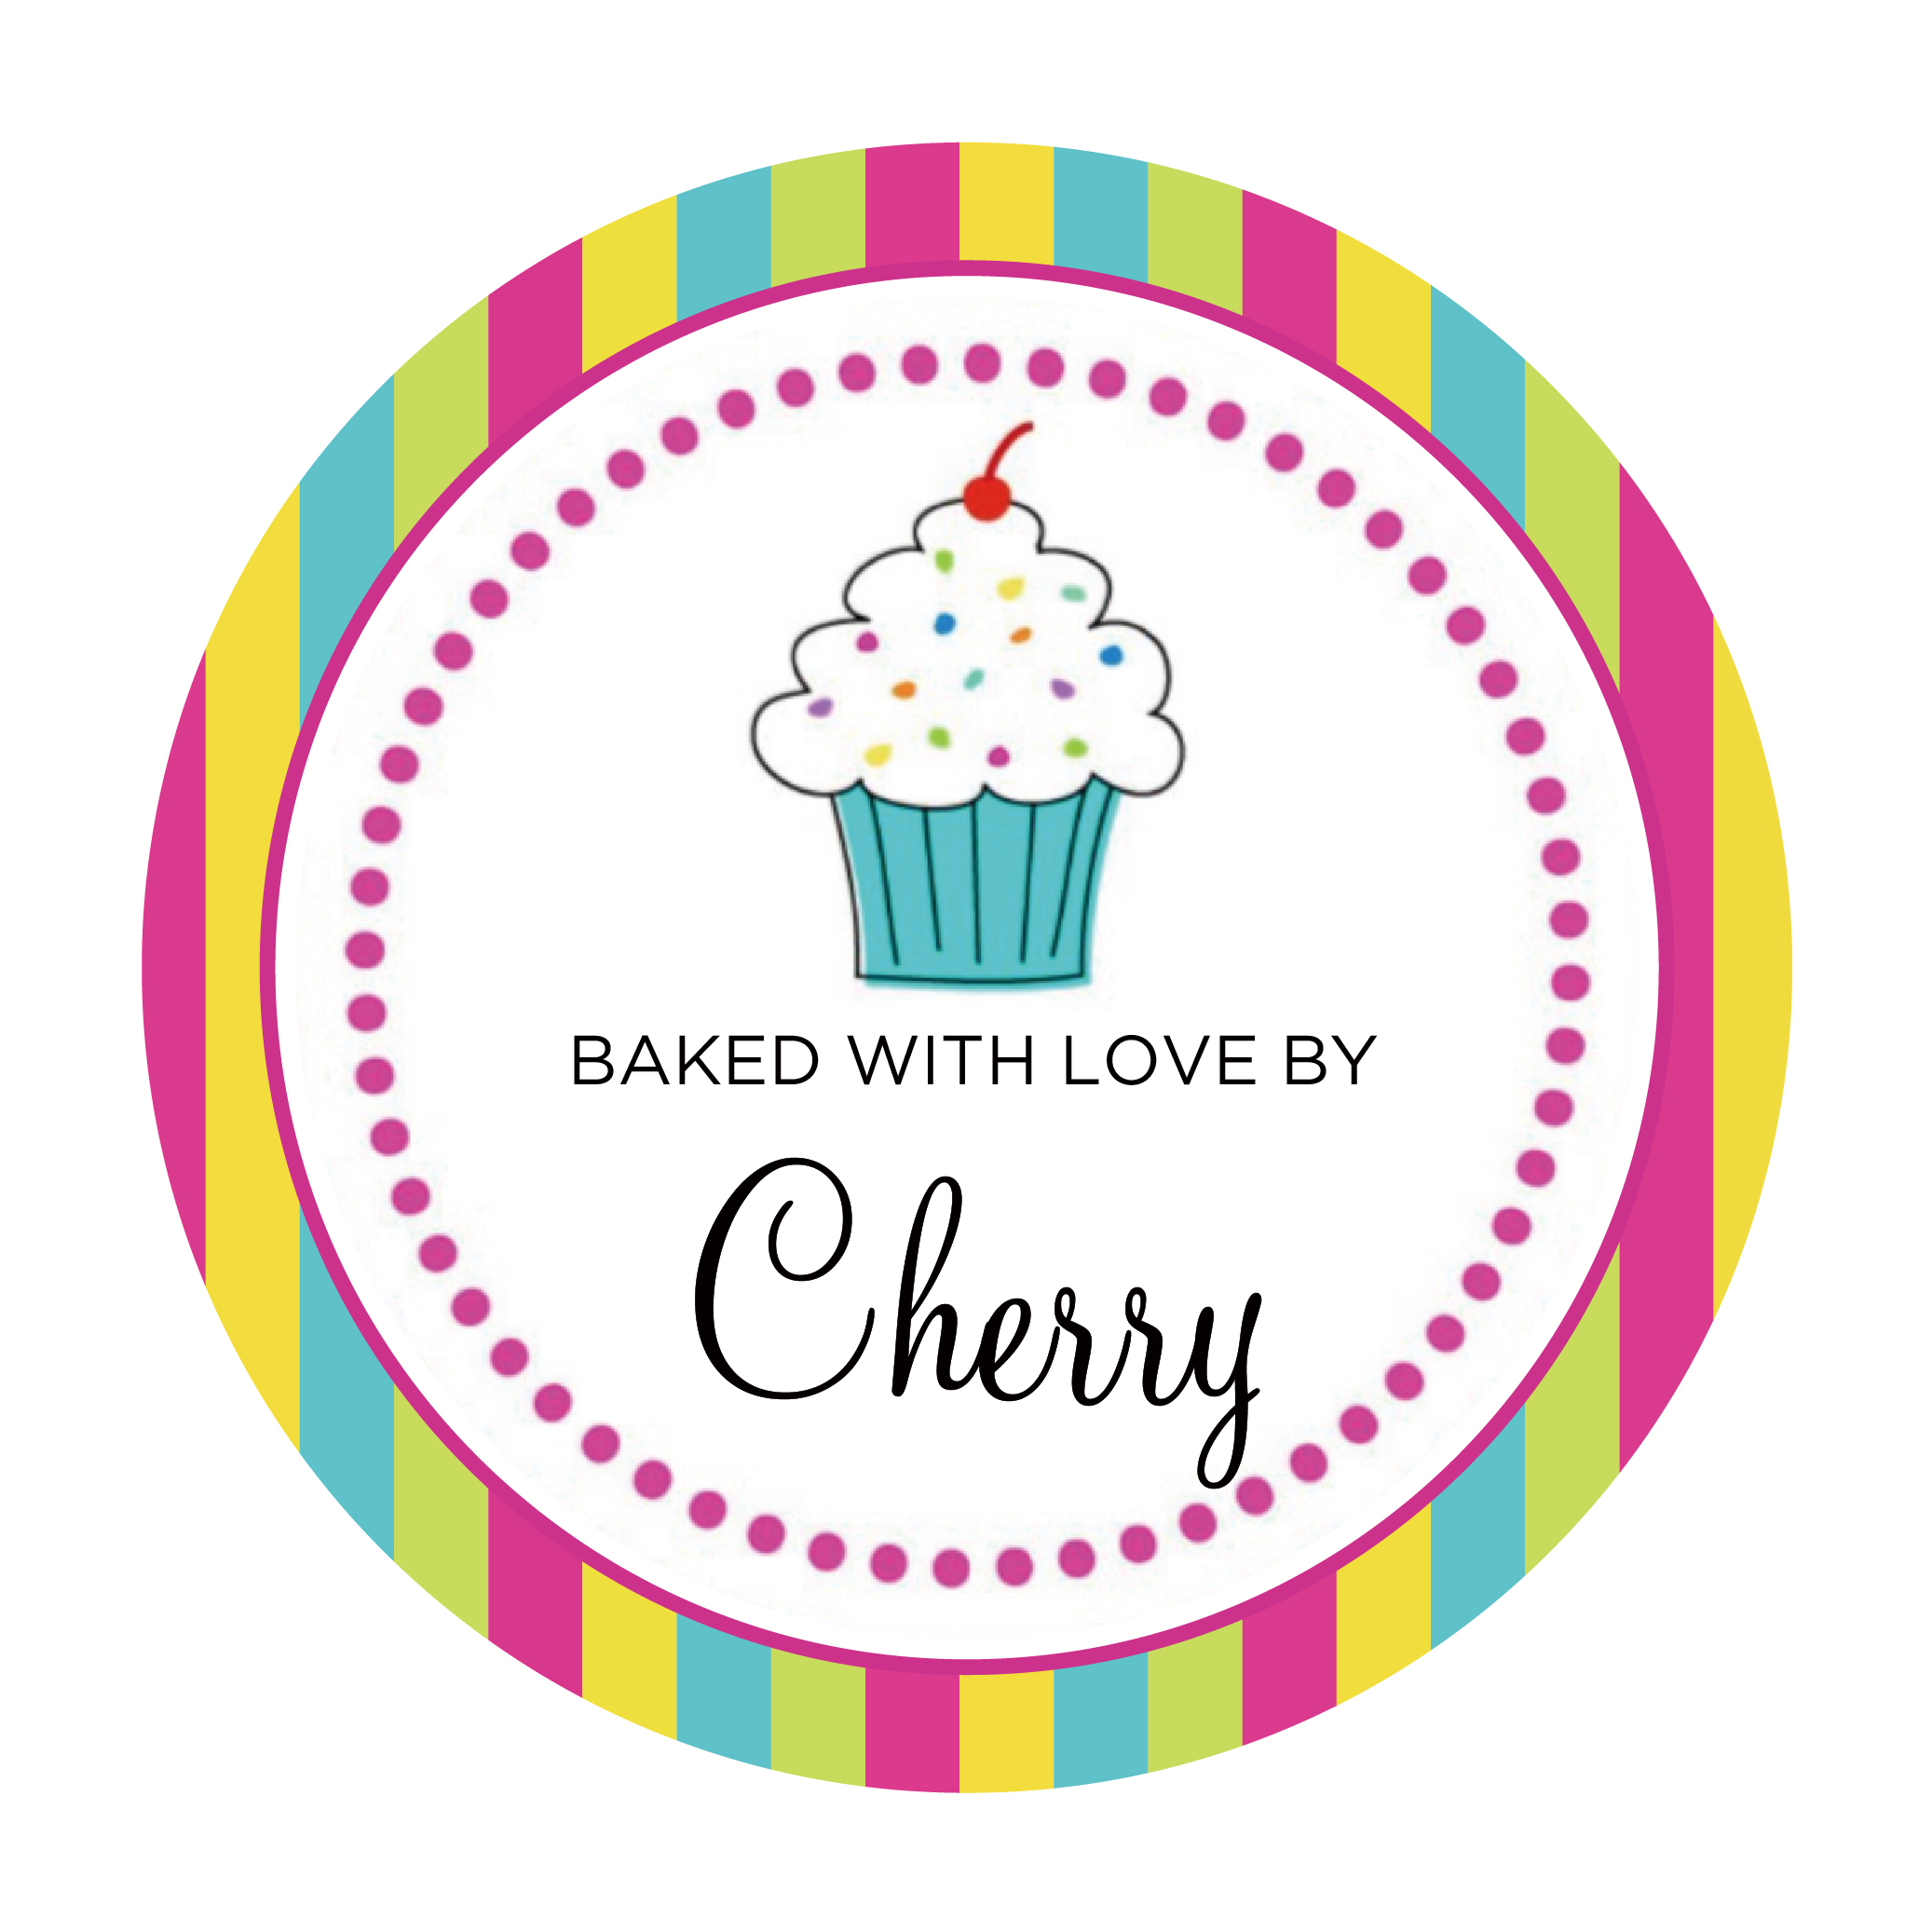 BAKED WITH LOVE personalised cupcake your company name stickers label PINK ROSE